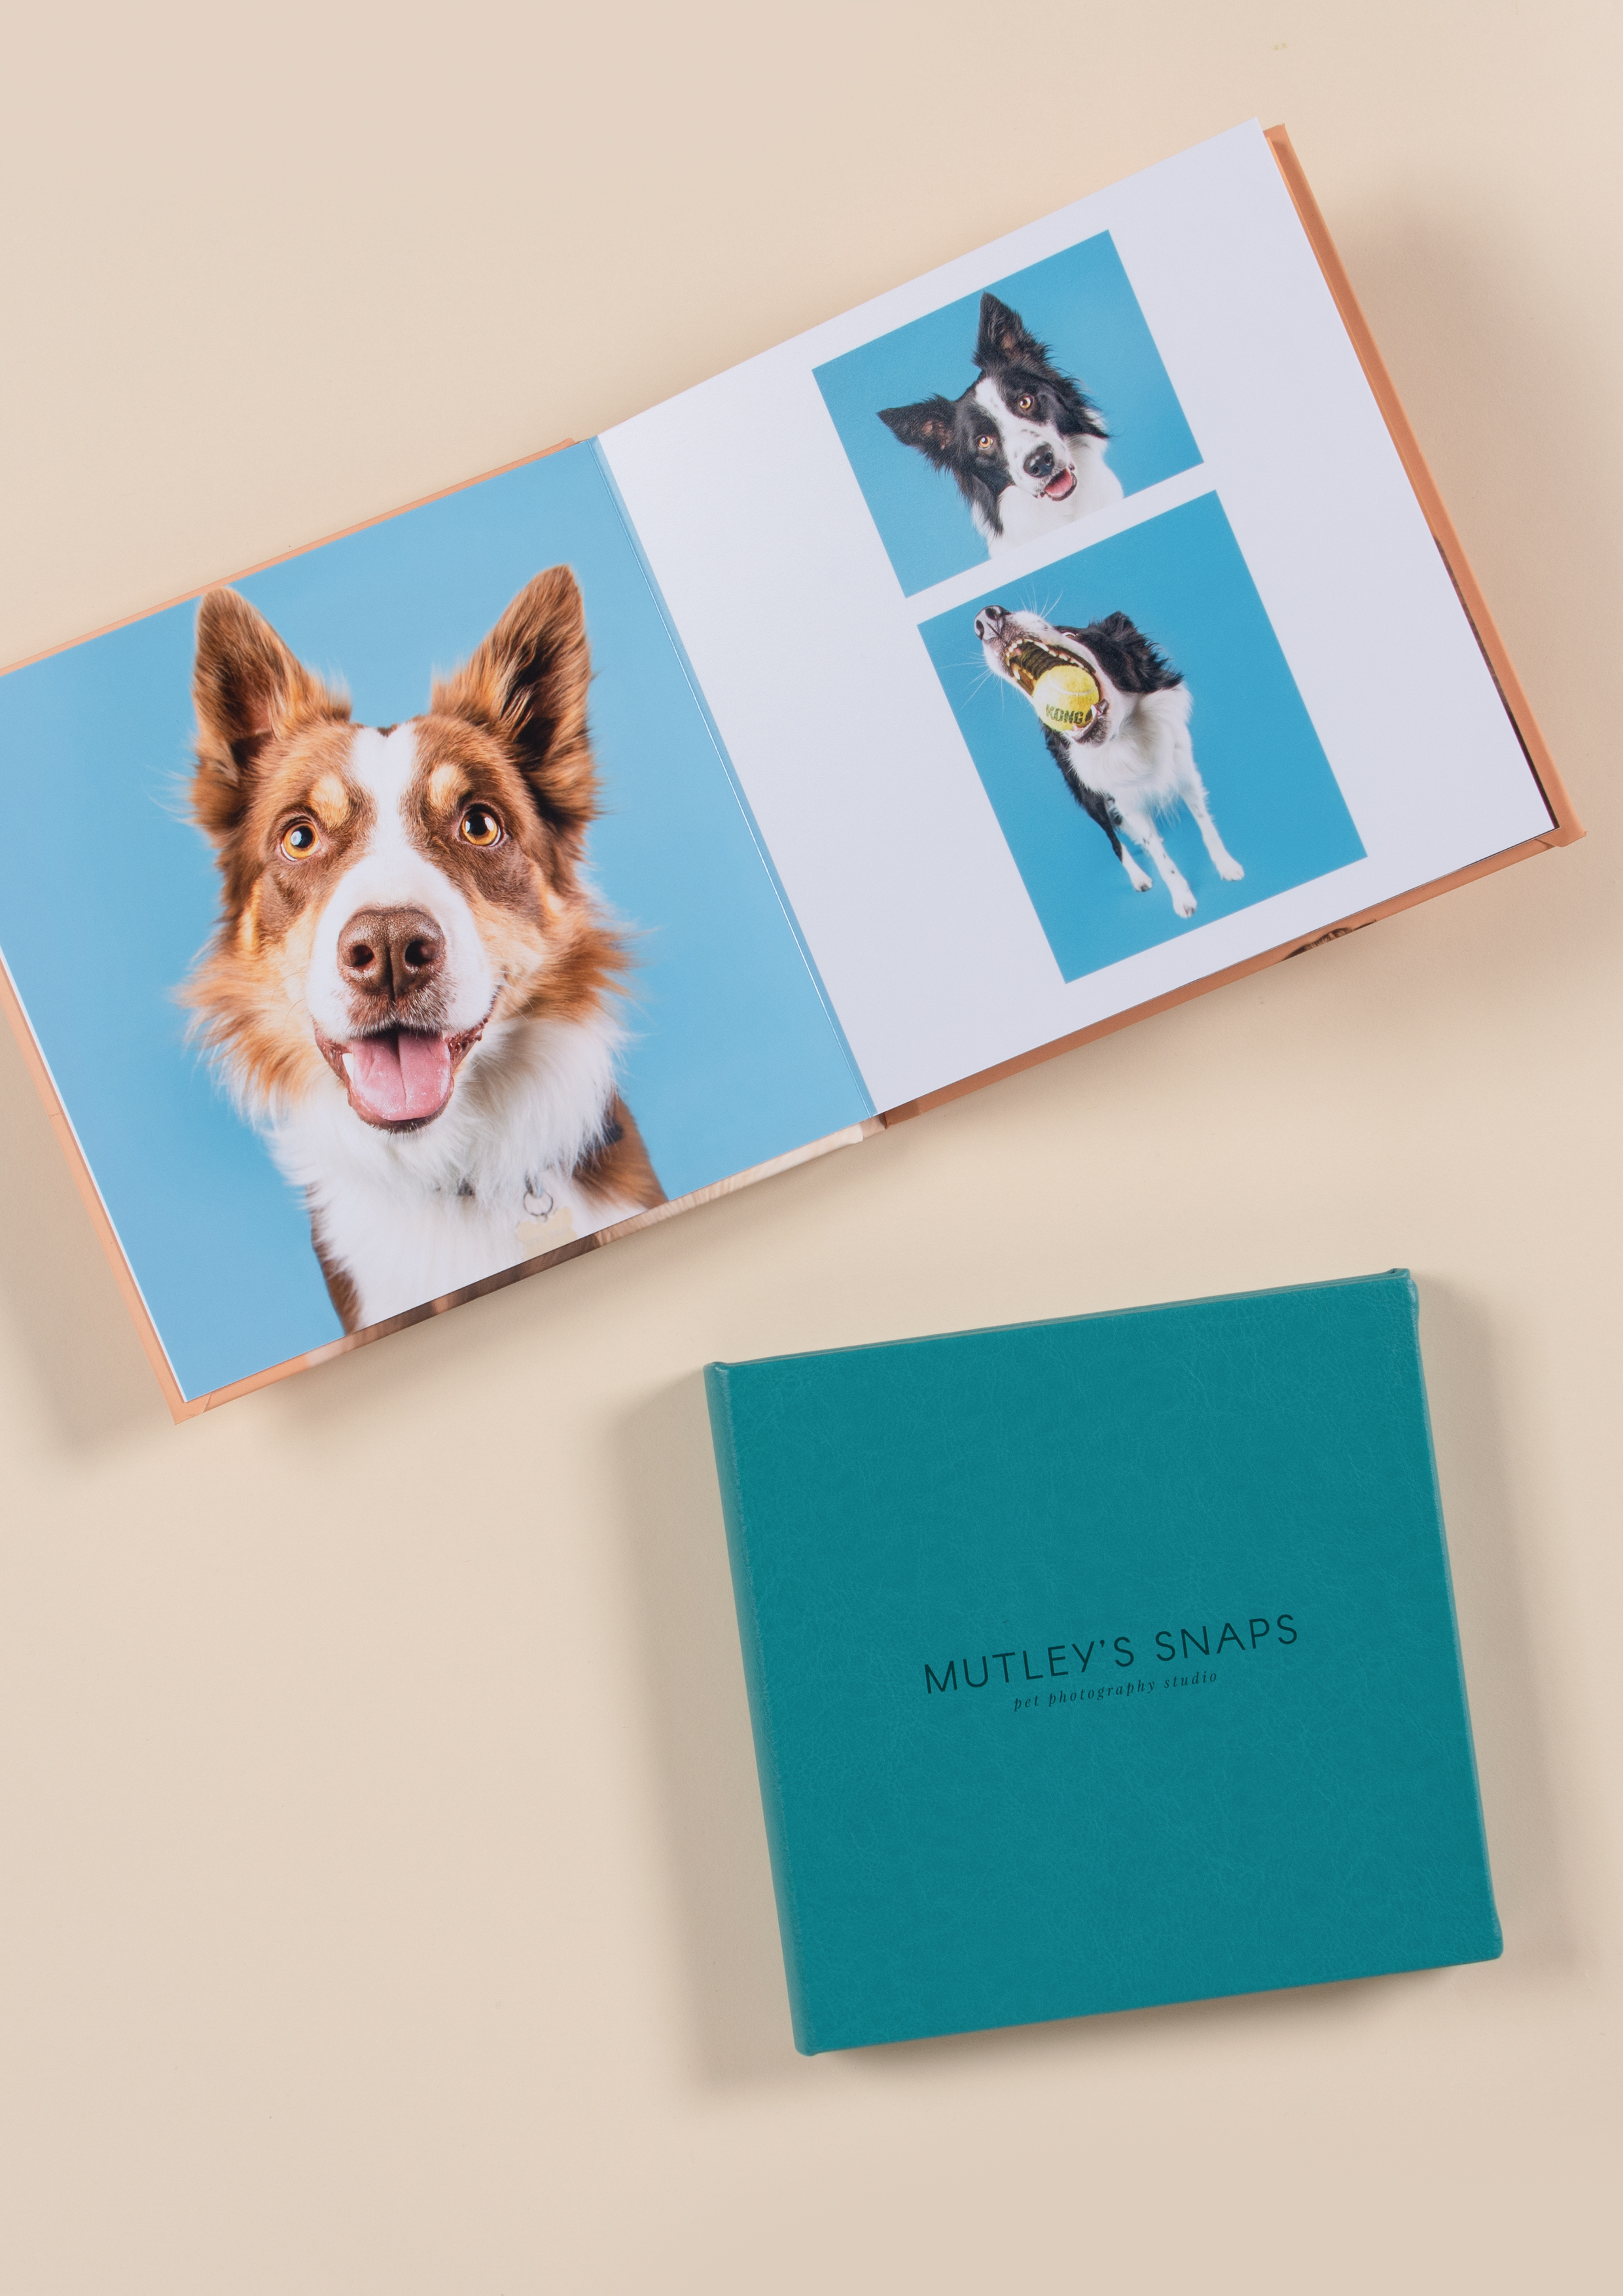 dog photography in a professional album